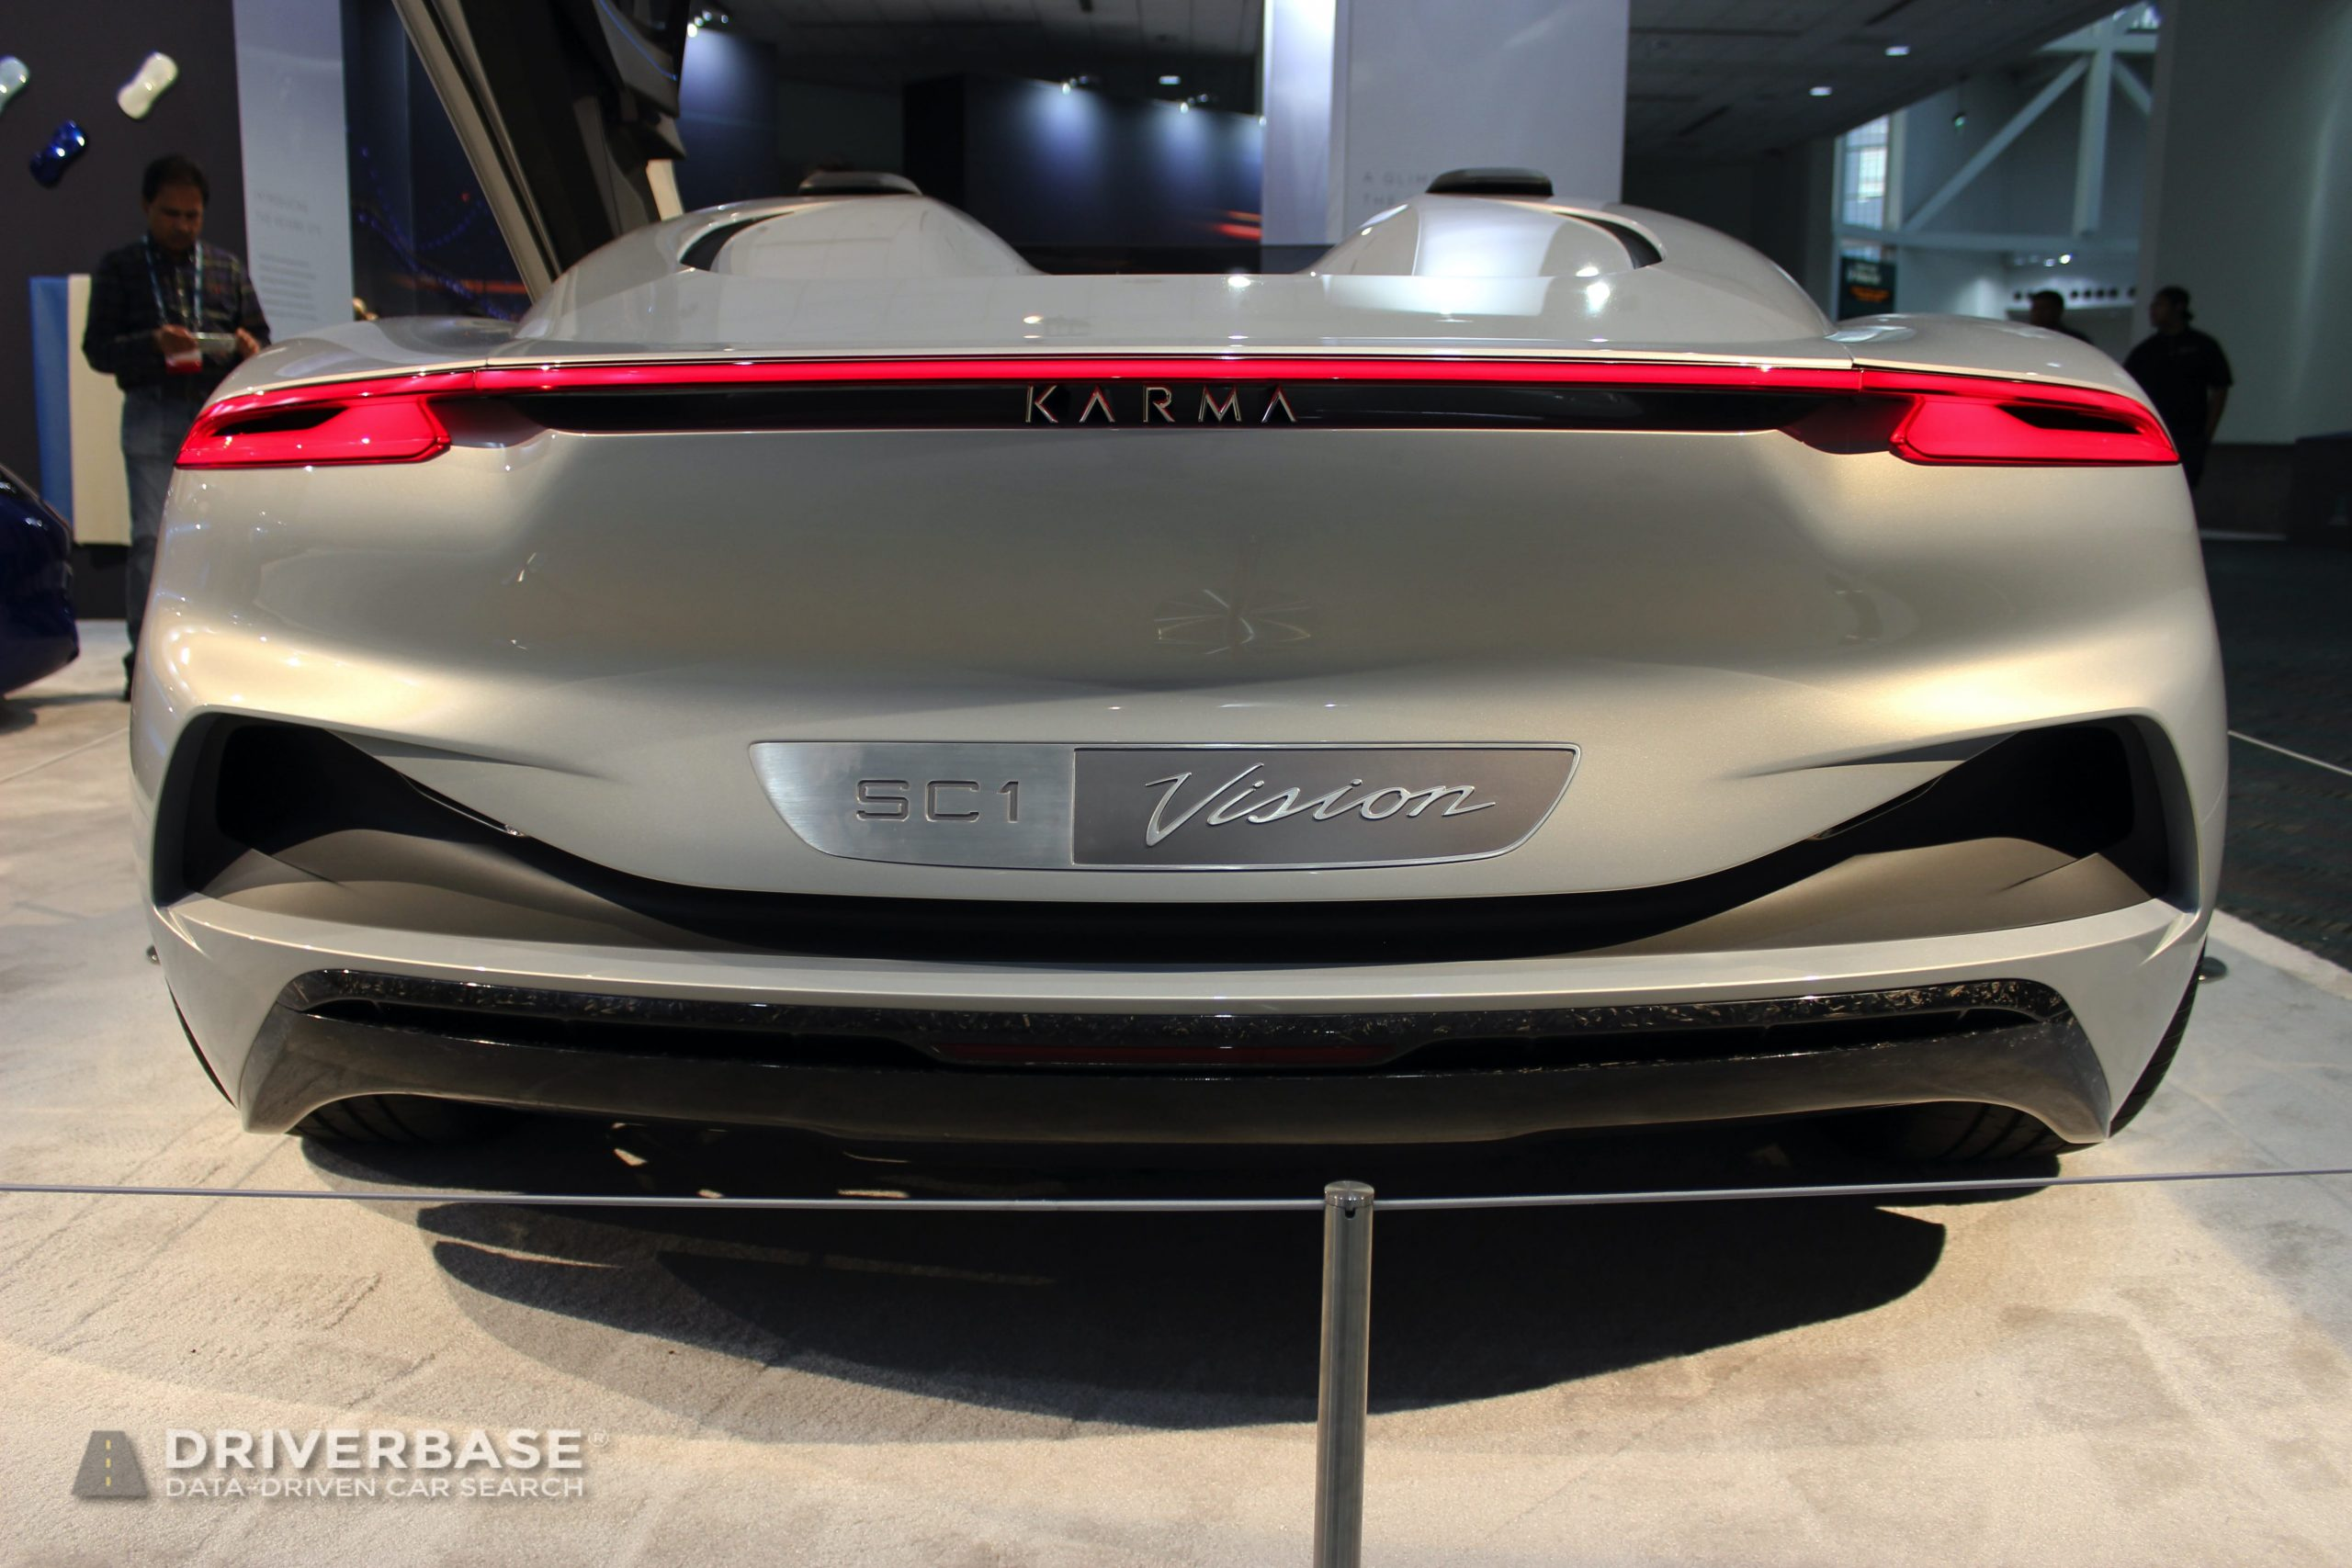 Karma SC1 Vision at the 2019 Los Angeles Auto Show